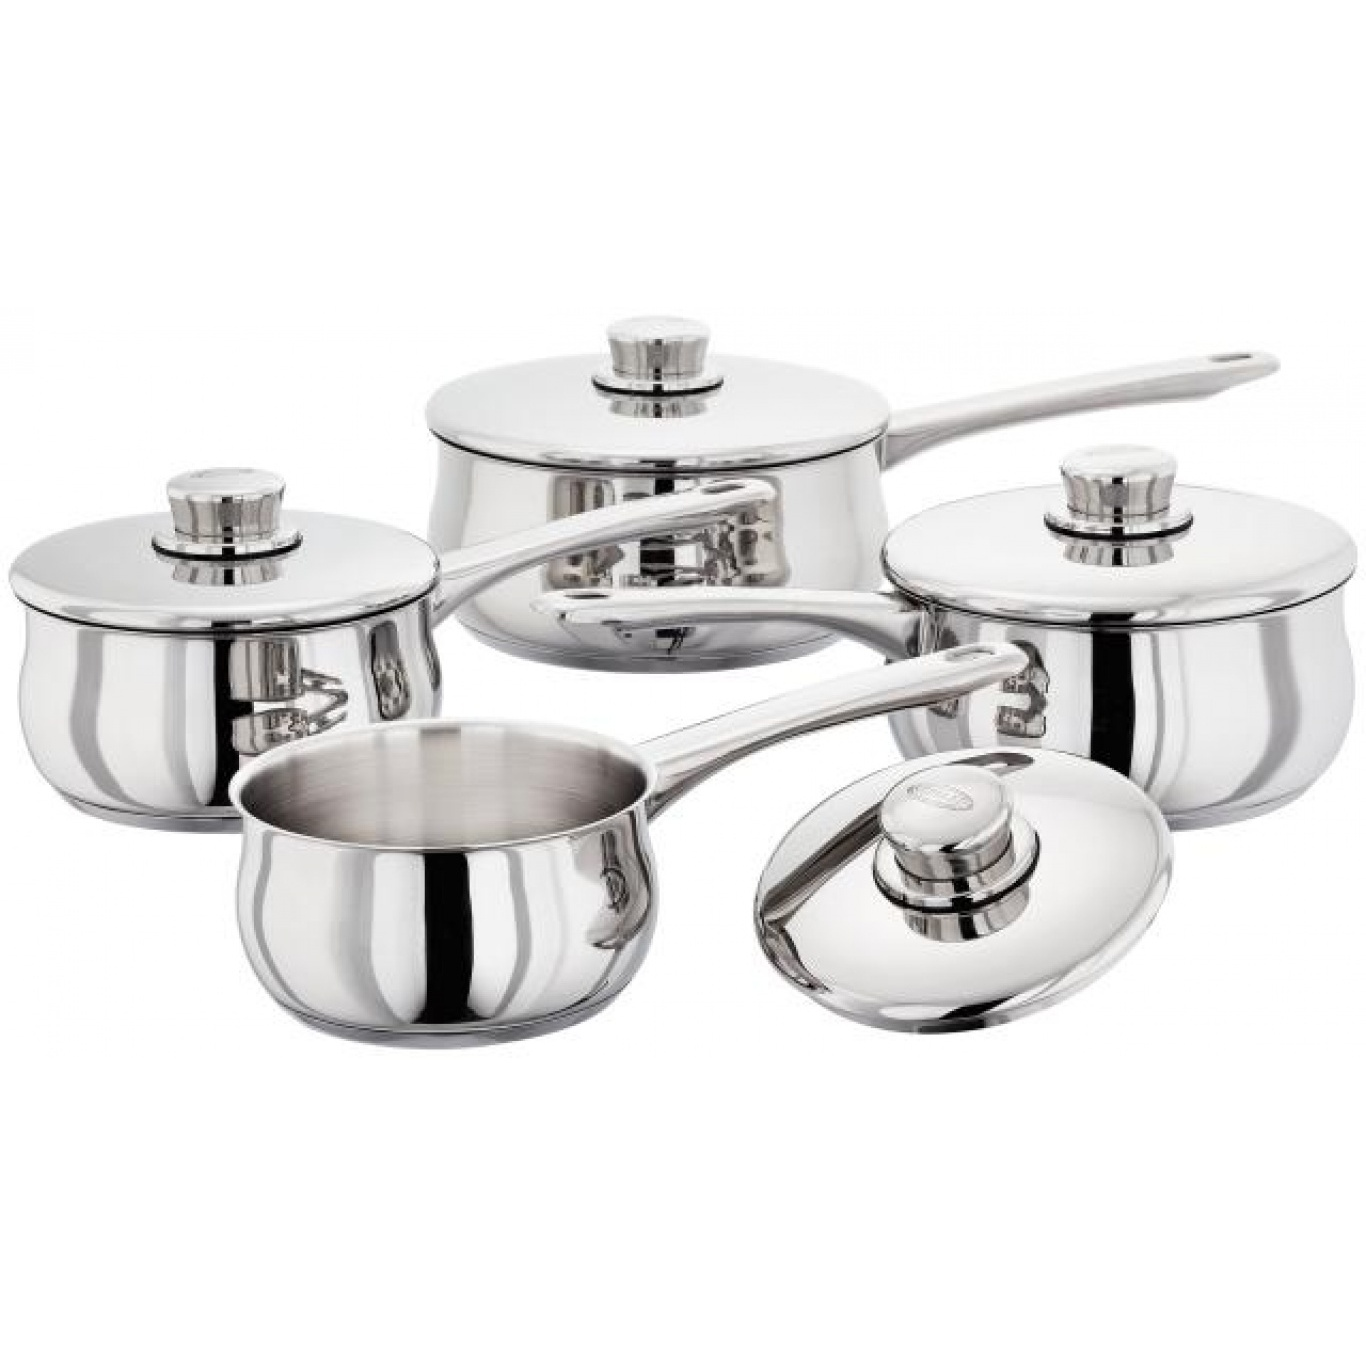 Stellar 1000 3 Piece Saucepan Set with Free 14cm Saucepan